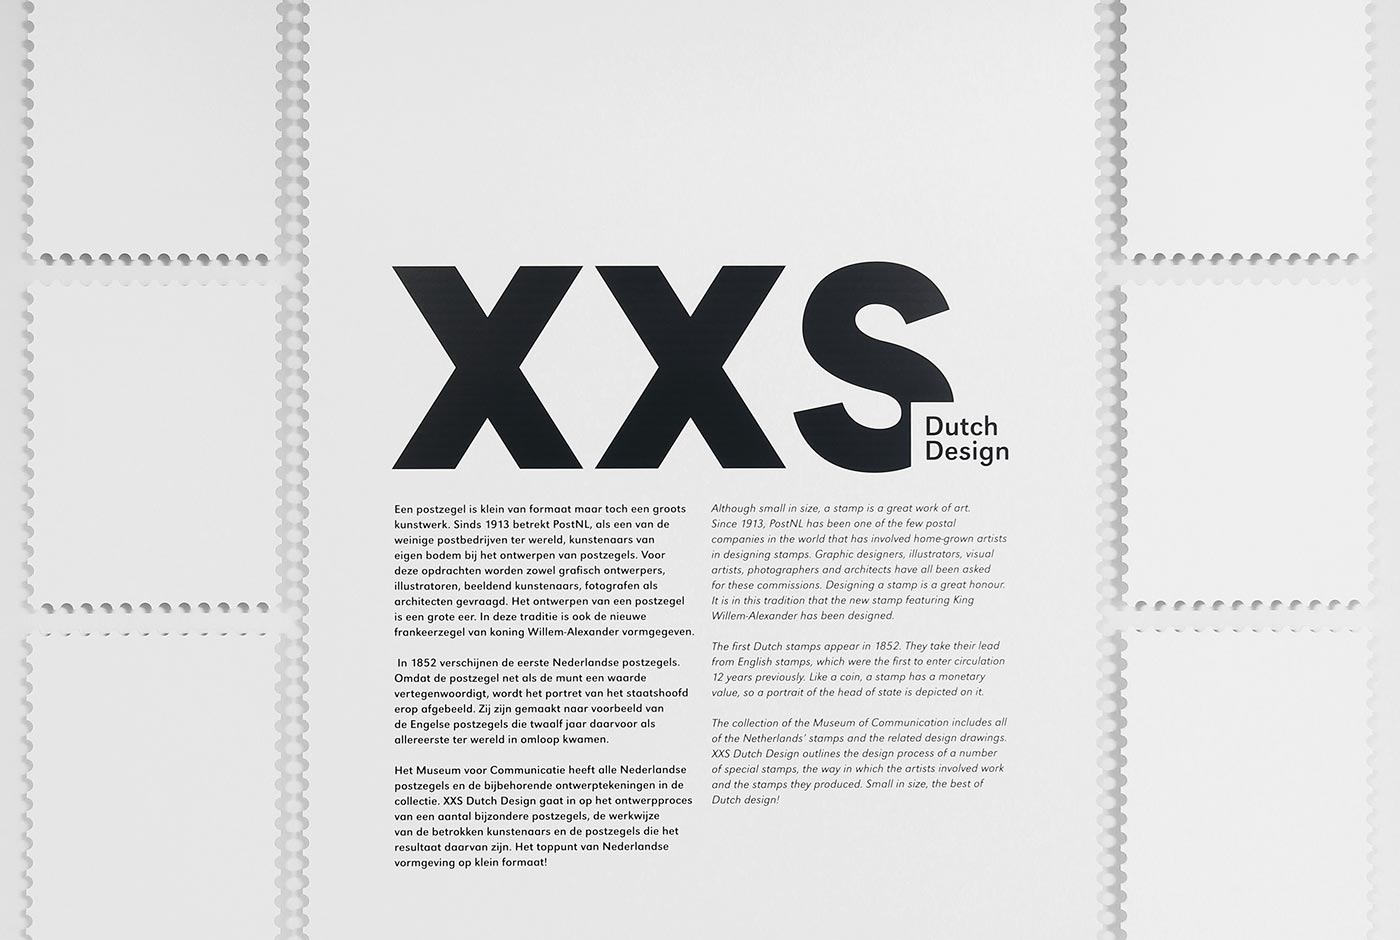 XXS Dutch Design Exhibition